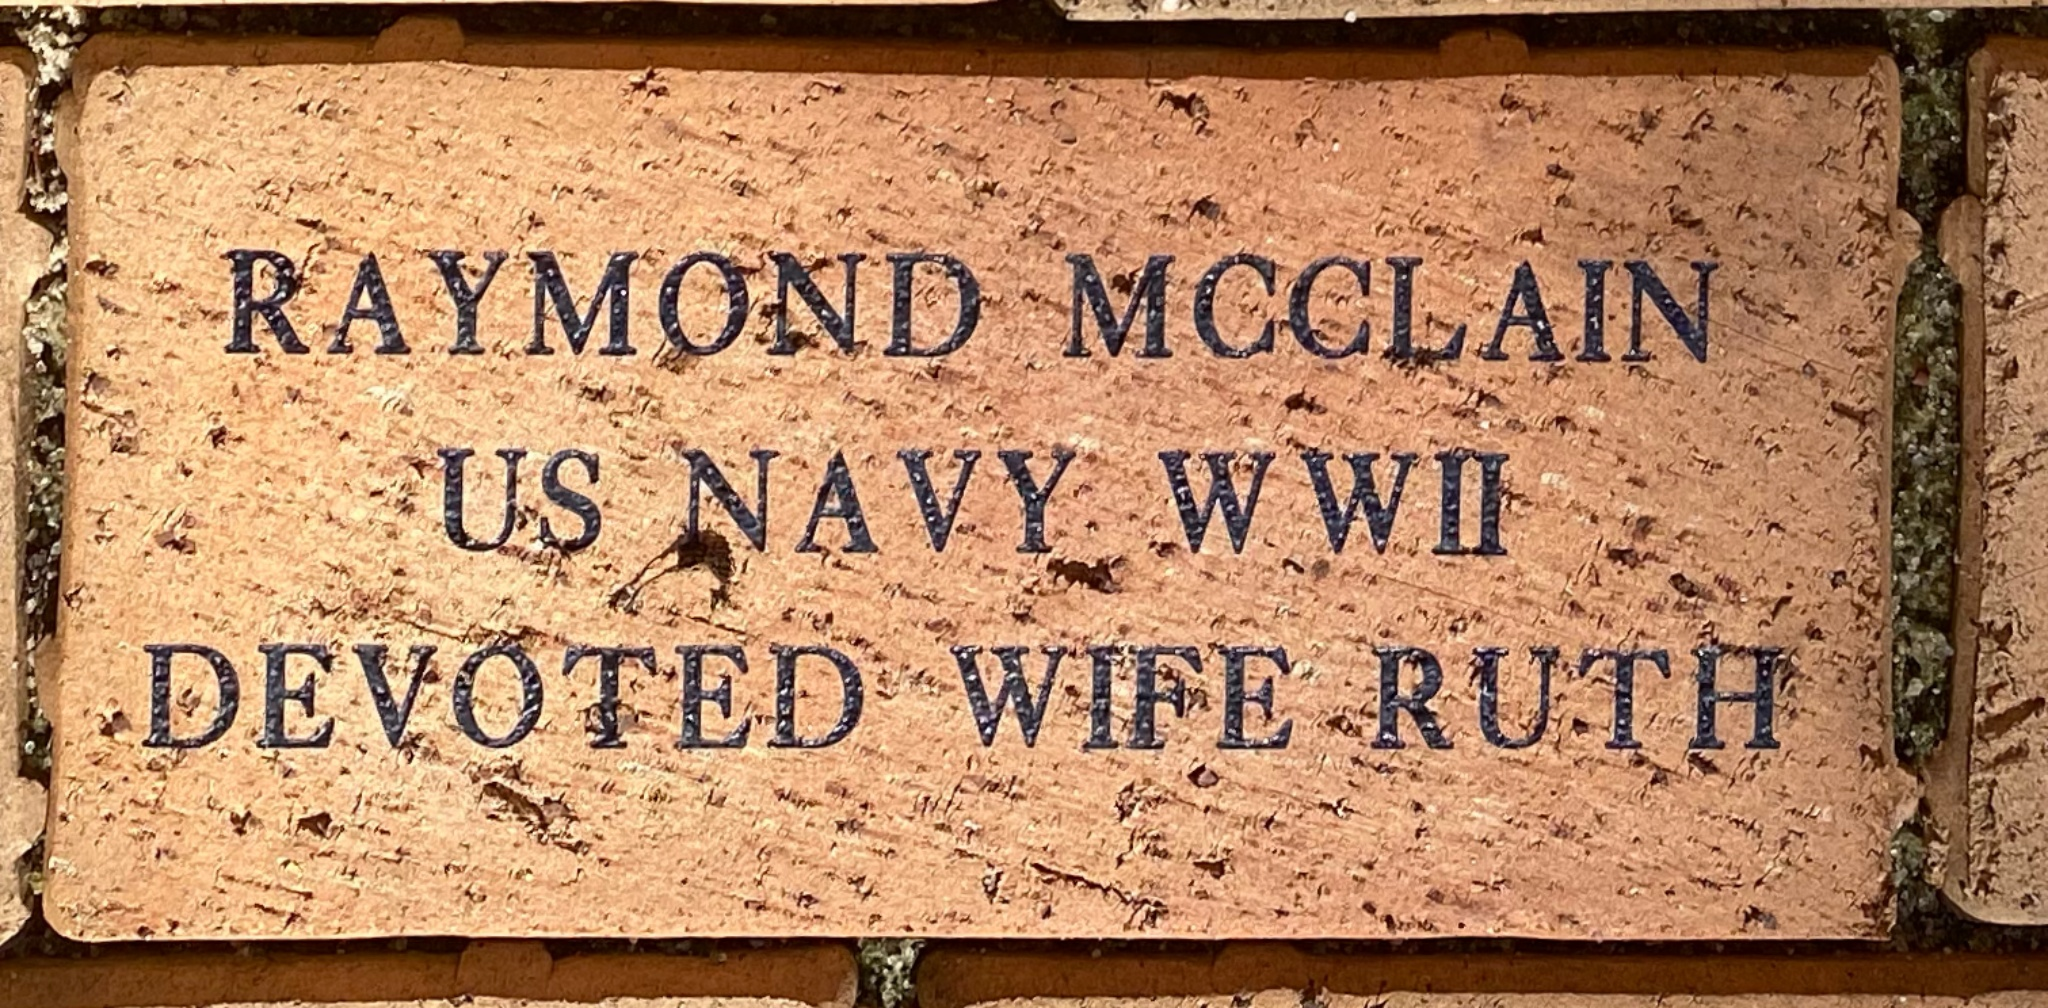 RAYMOND MCCLAIN US NAVY WWII DEVOTED WIFE RUTH